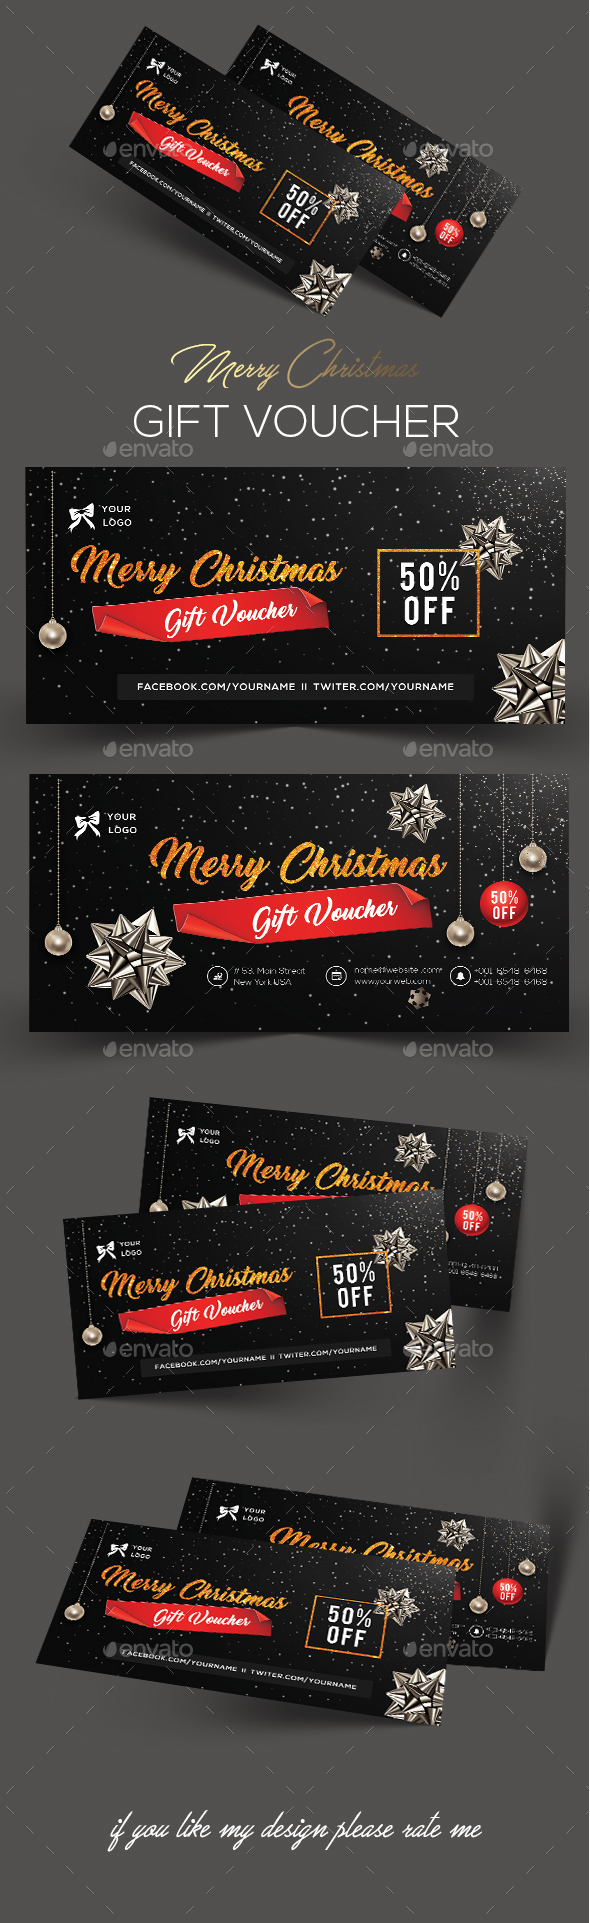 Christmas Gift Voucher - Flyers Print Templates